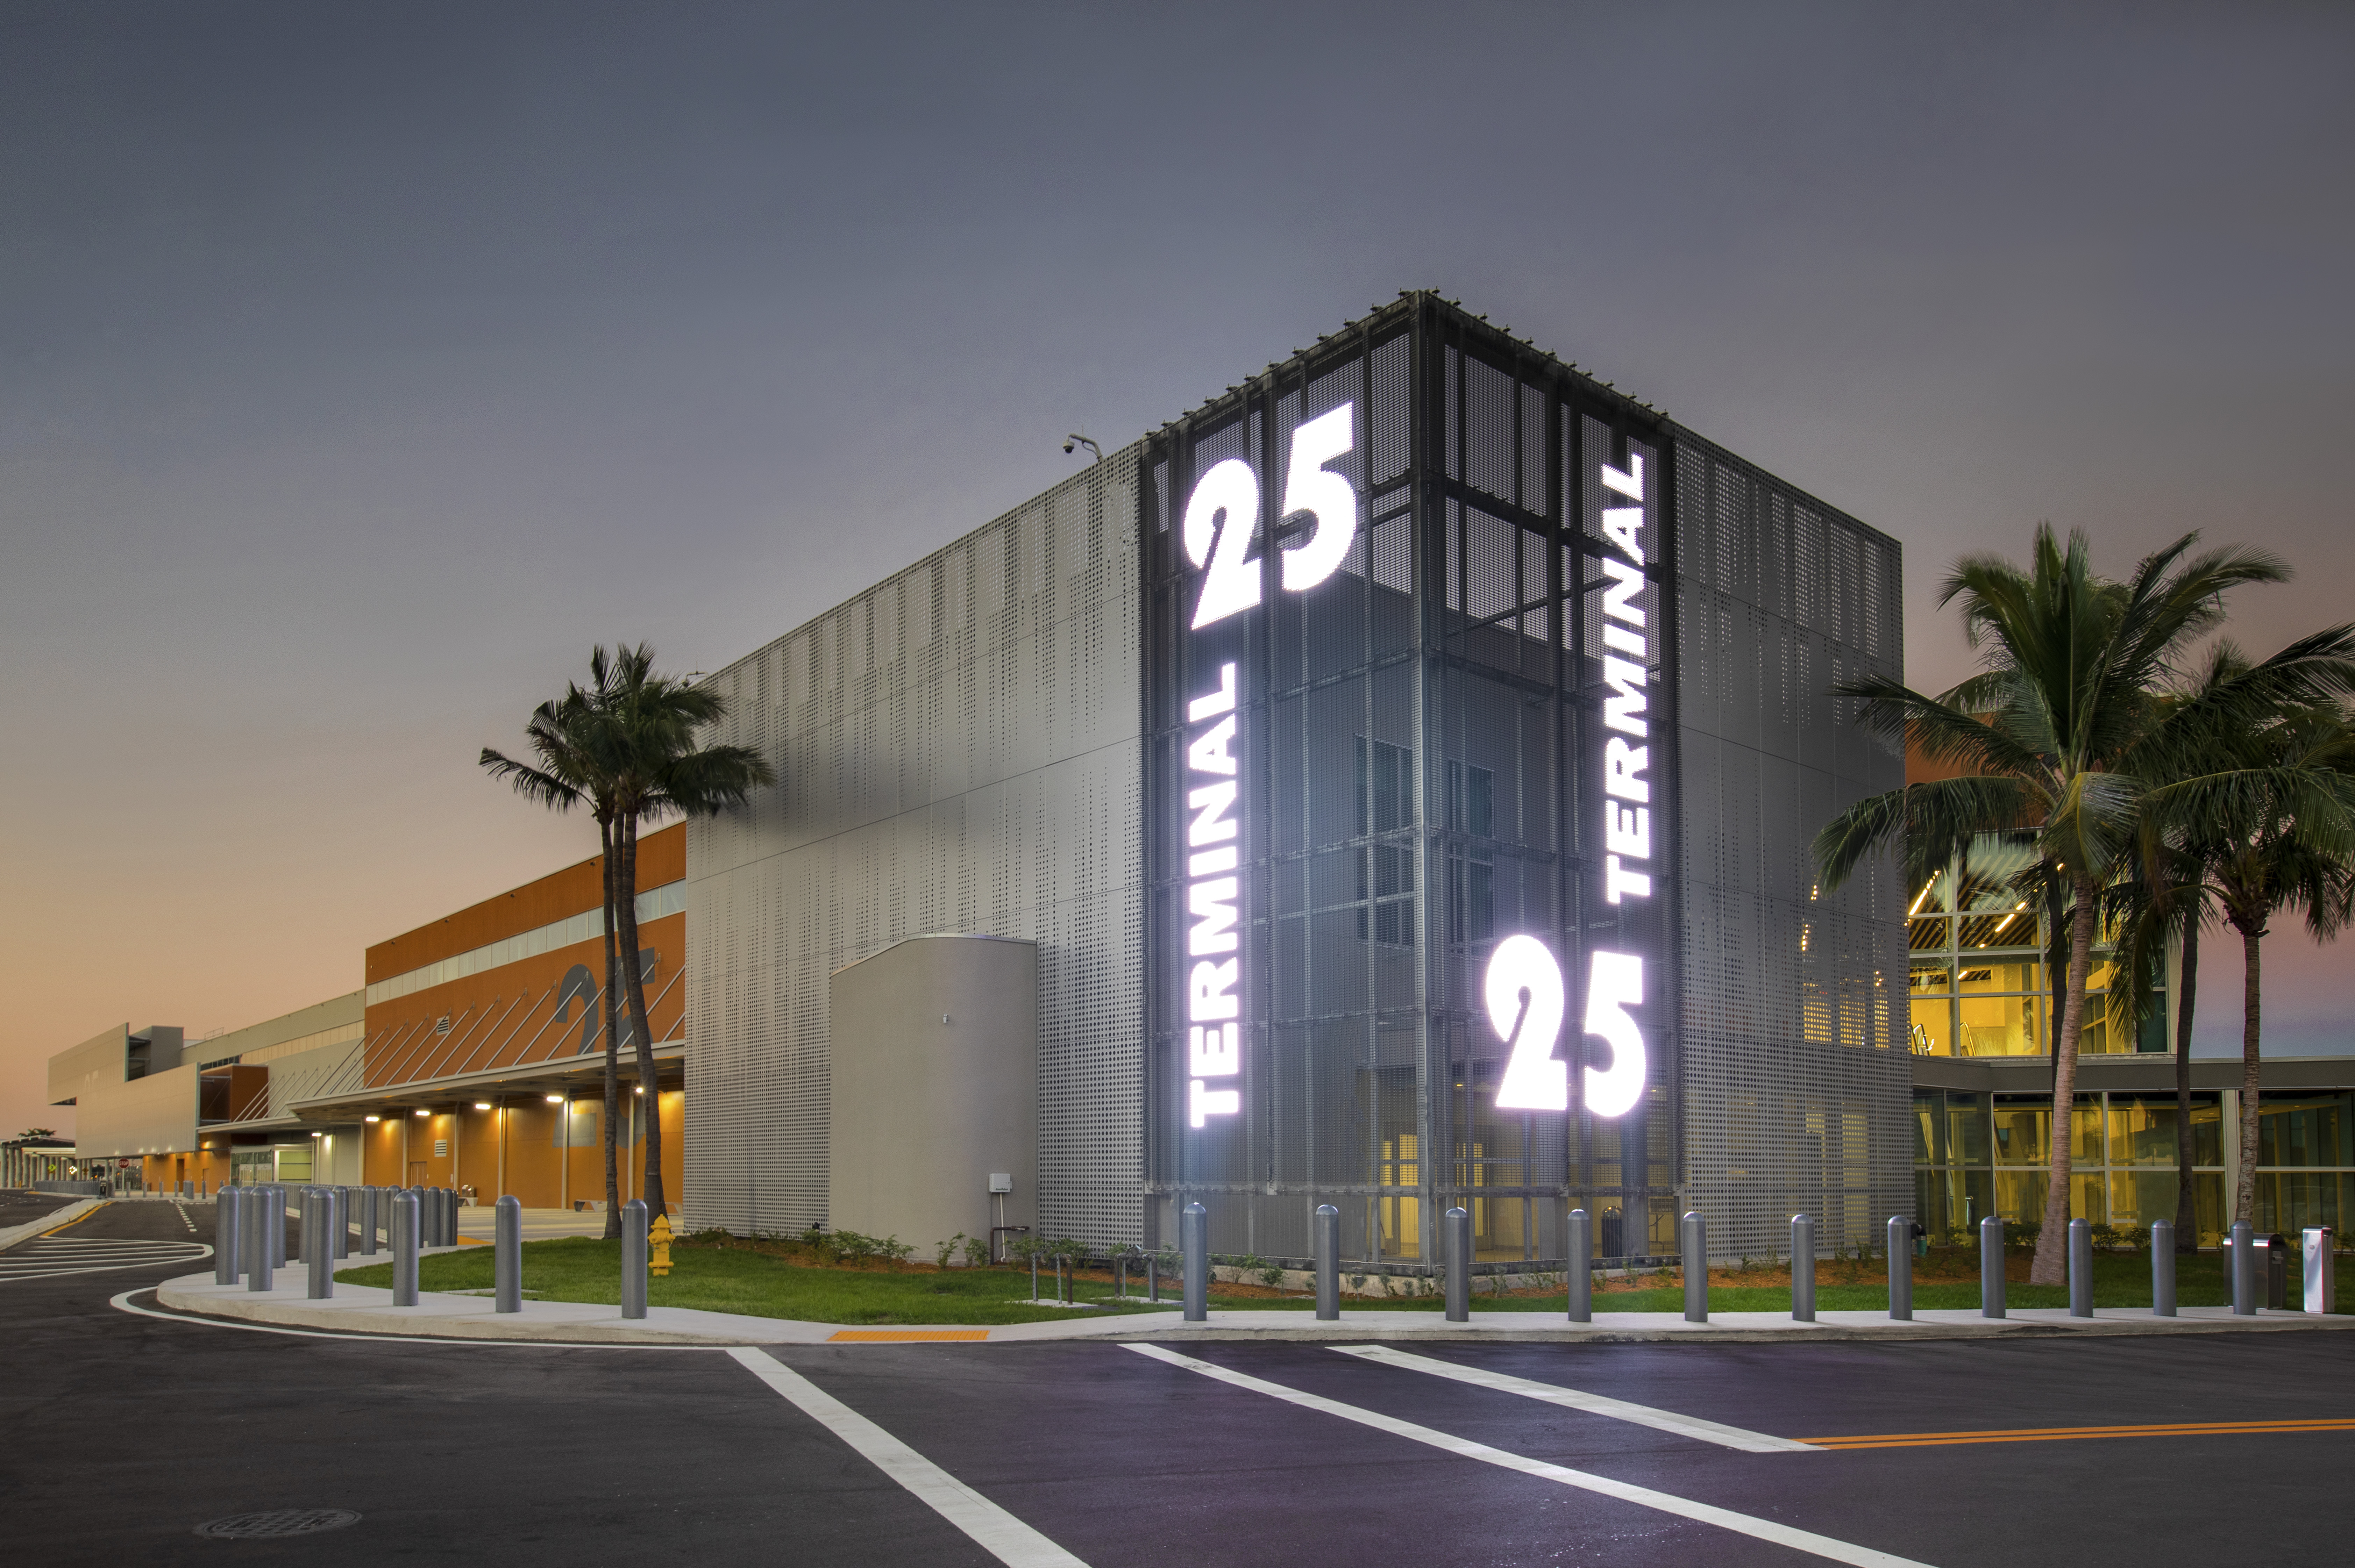 Port Everglades Terminal 25 exterior of building with sign lit up